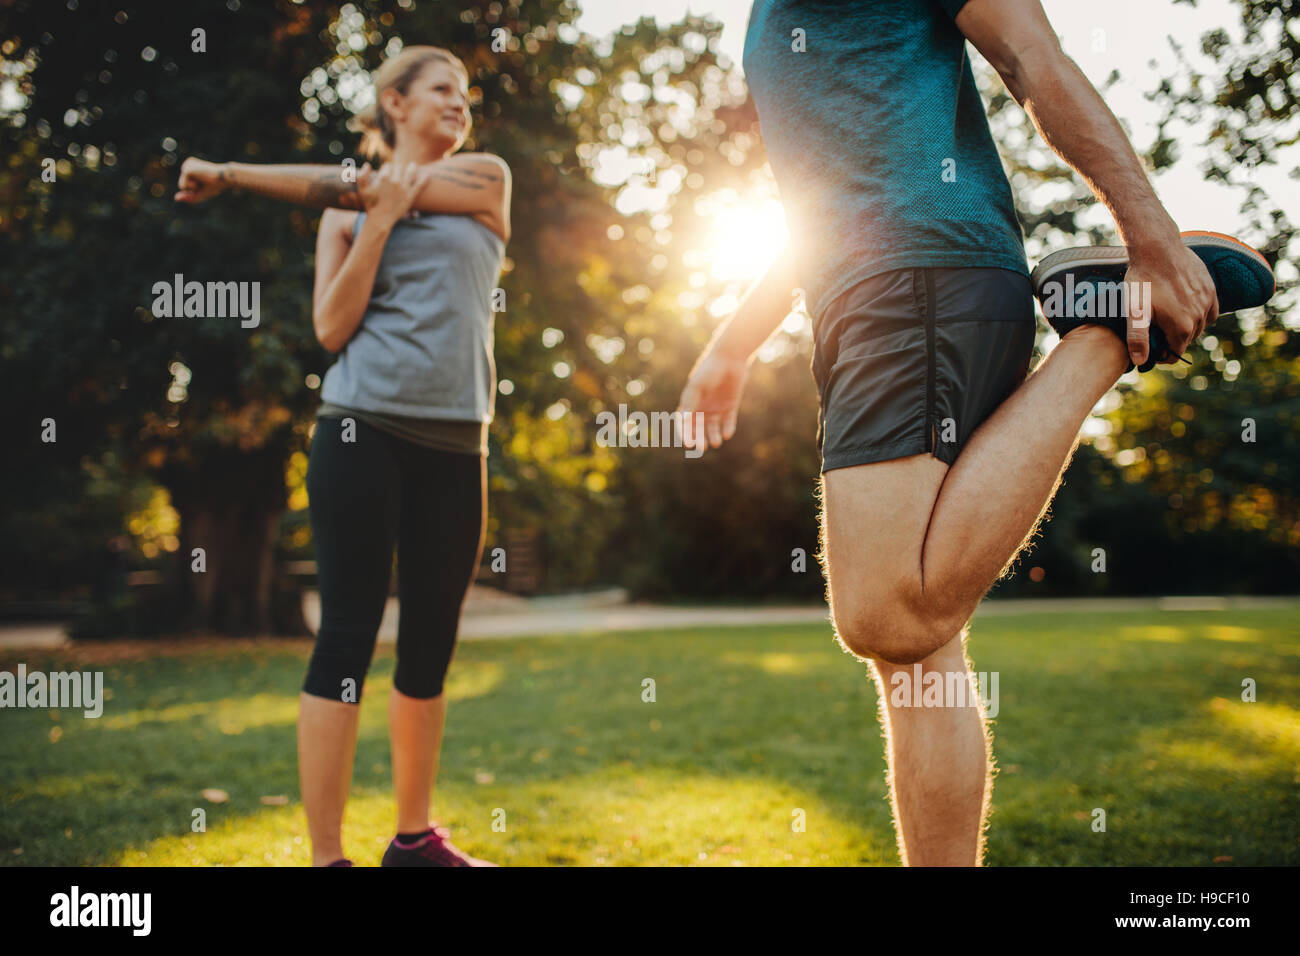 Shot of young man and woman stretching in the park. Young couple warming up in morning. - Stock Image